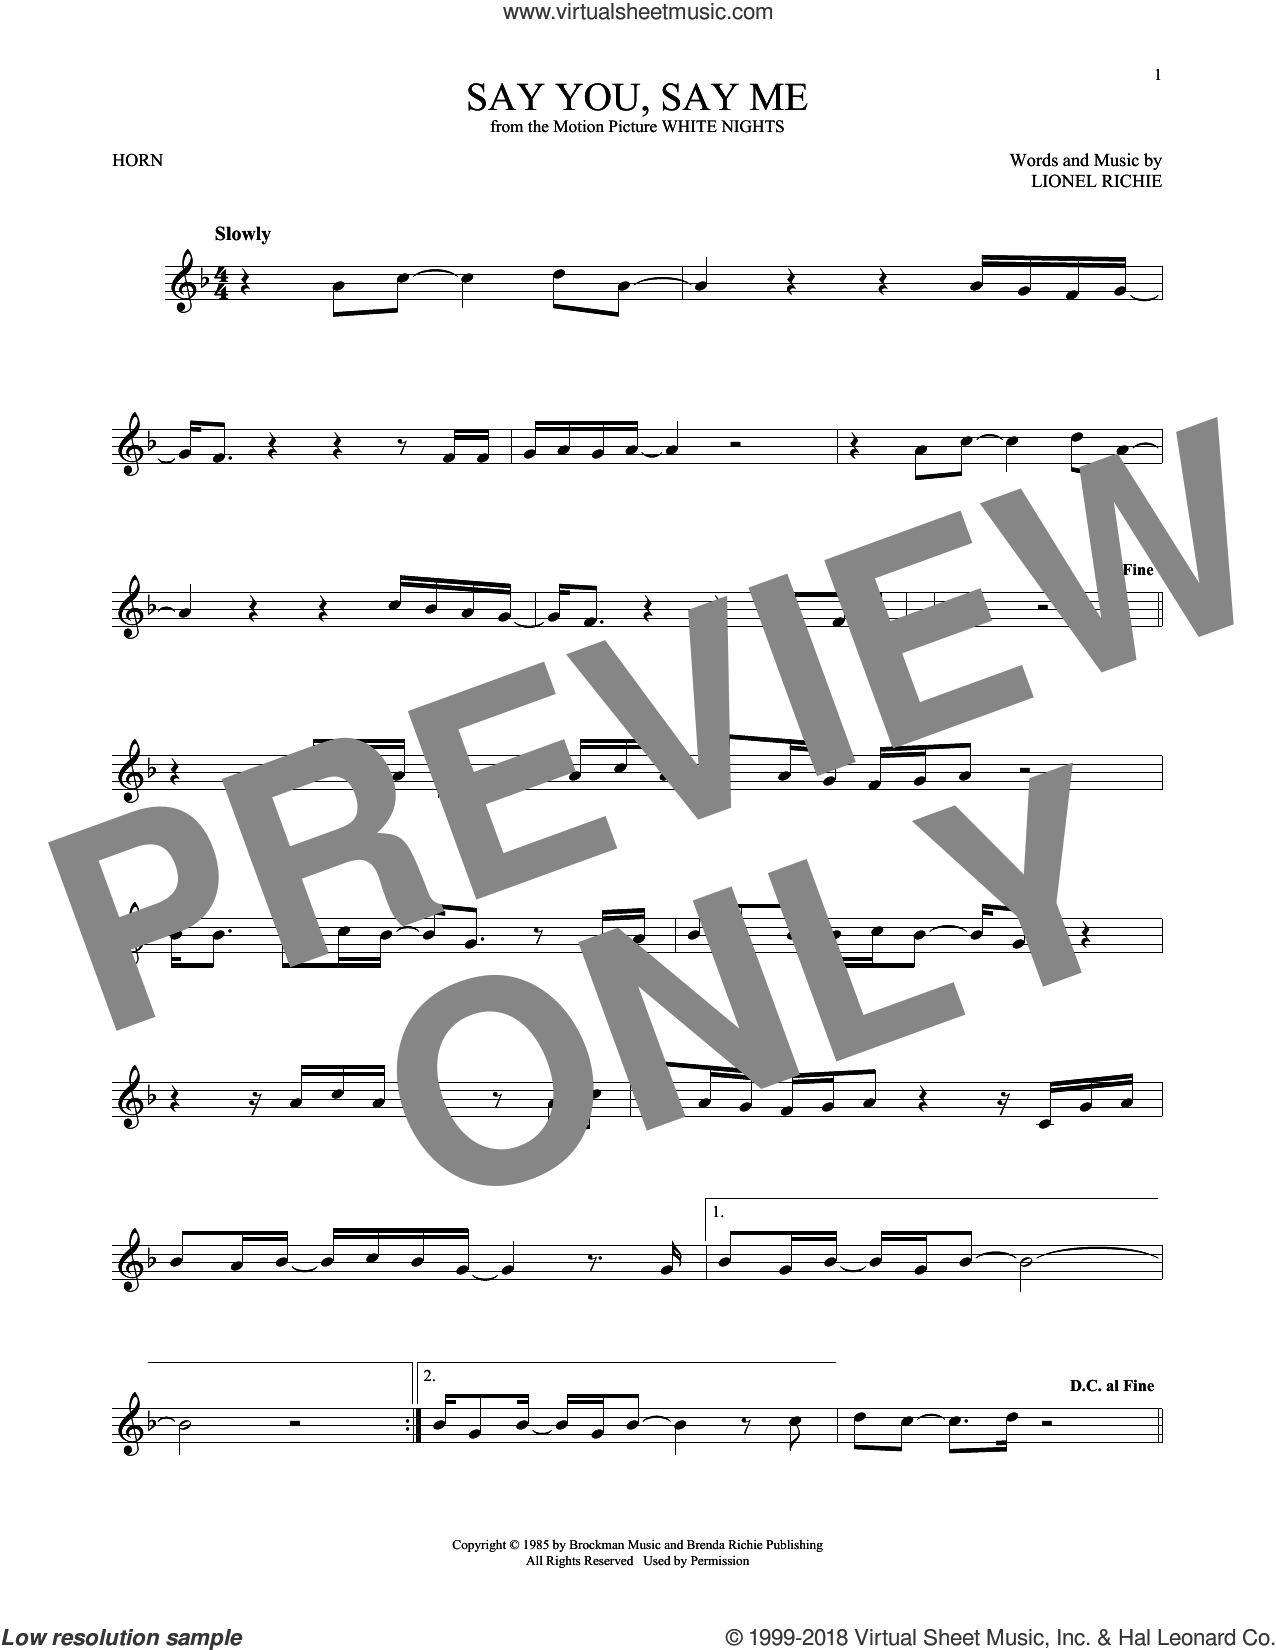 Say You, Say Me sheet music for horn solo by Lionel Richie, intermediate skill level